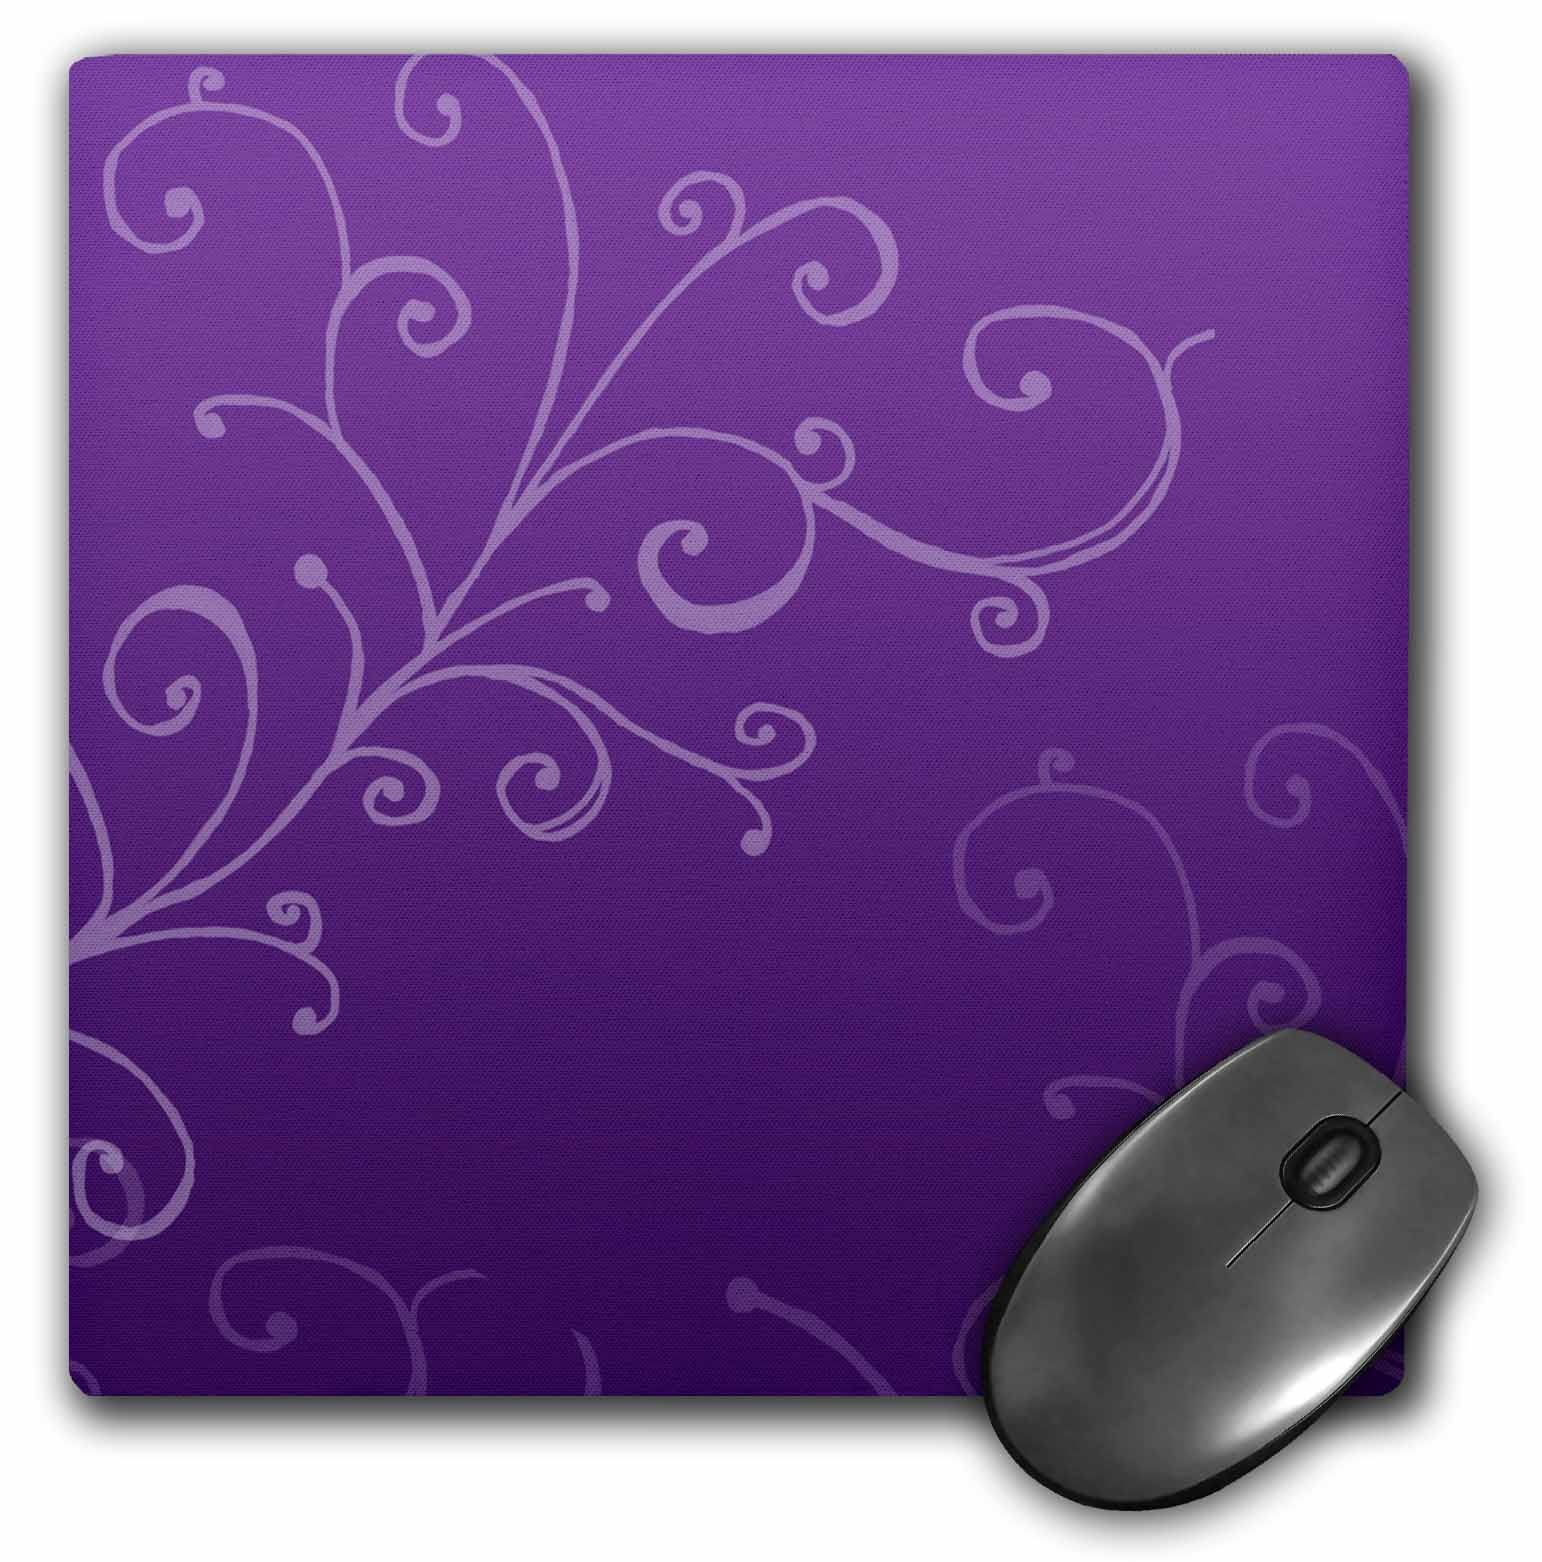 3dRose Stylish Swirl Purple, Mouse Pad, 8 by 8 inches by 3dRose